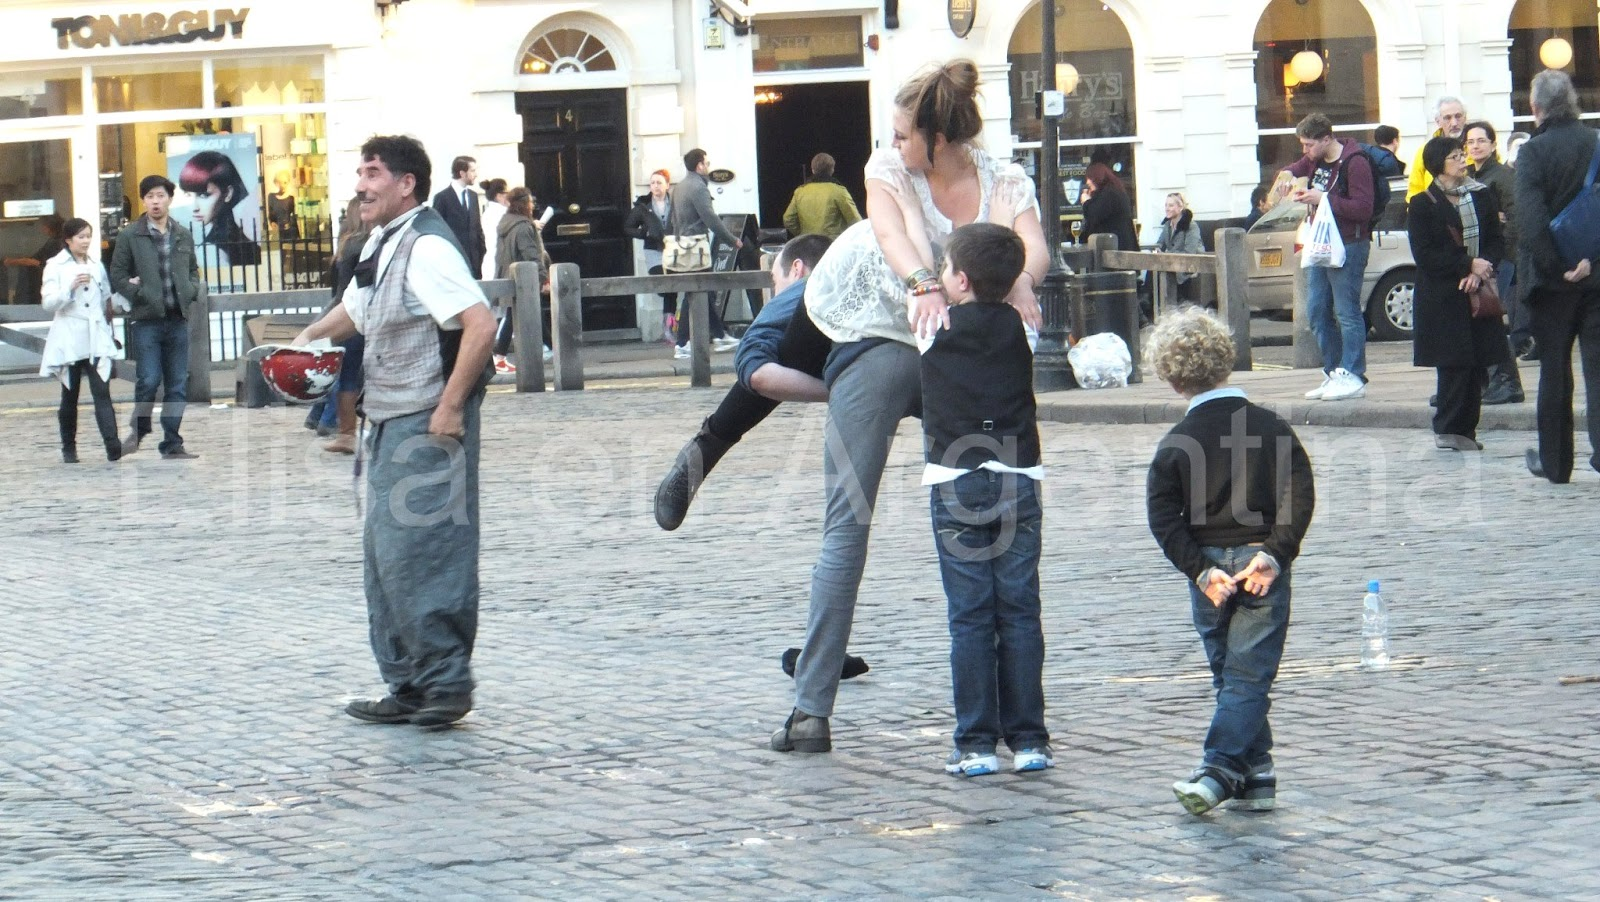 People in London: Covent Garden